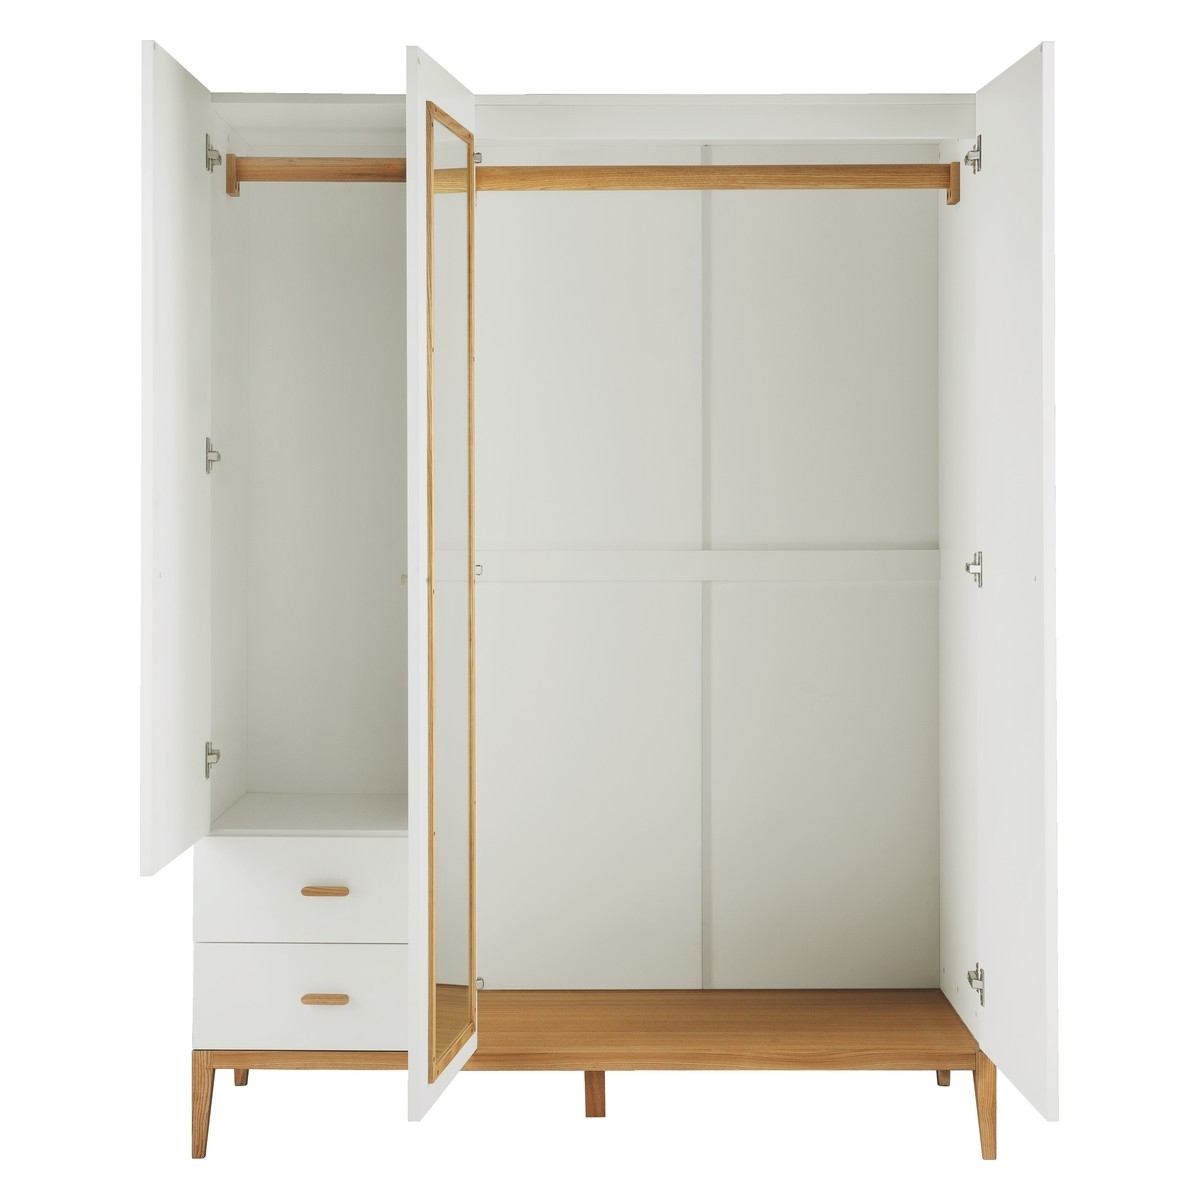 Buy Now At Habitat Uk For White 3 Door Wardrobes With Mirror (View 2 of 15)